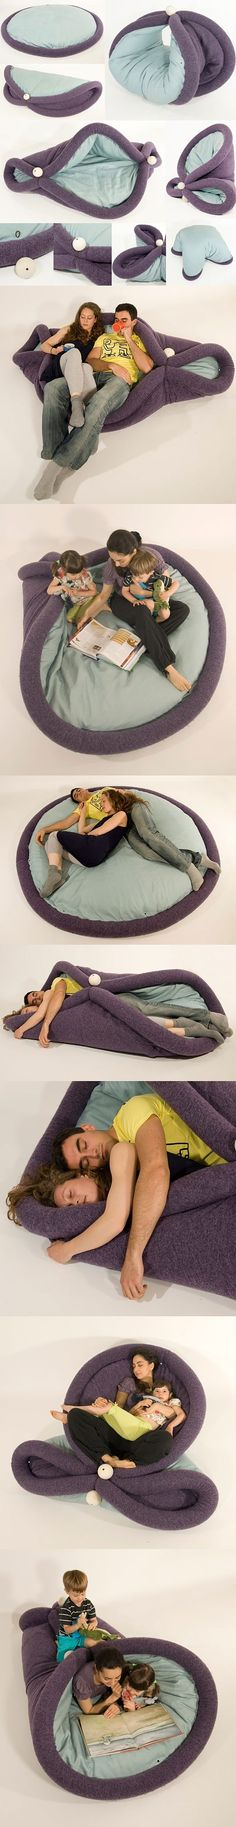 I want one of these so badly...